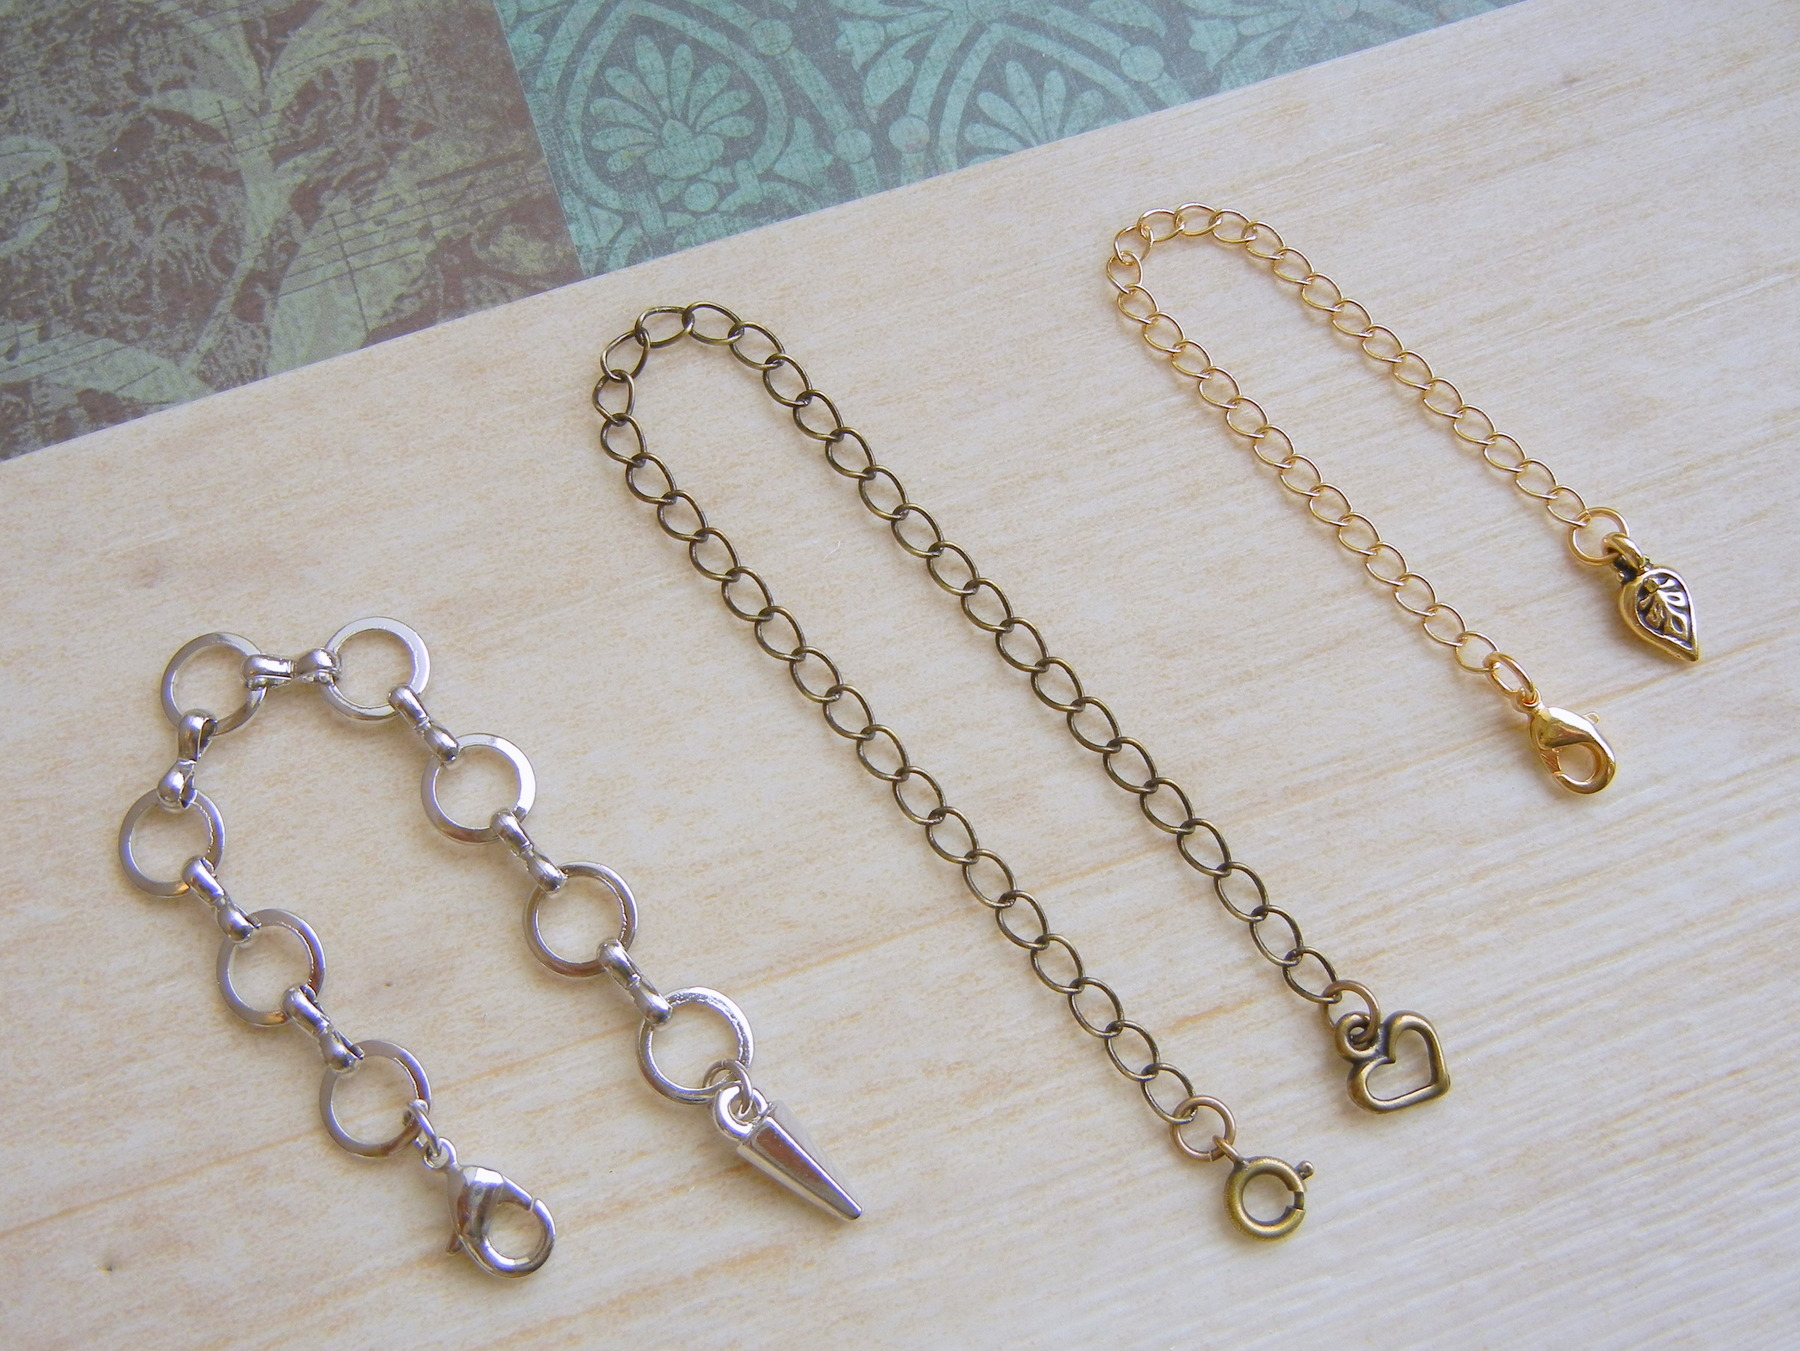 Extend Chain with Silver or Gold Necklace or Bracelet with Extend Chain Adjustable Chain Add-On Bracelet or Necklace Extend Chain